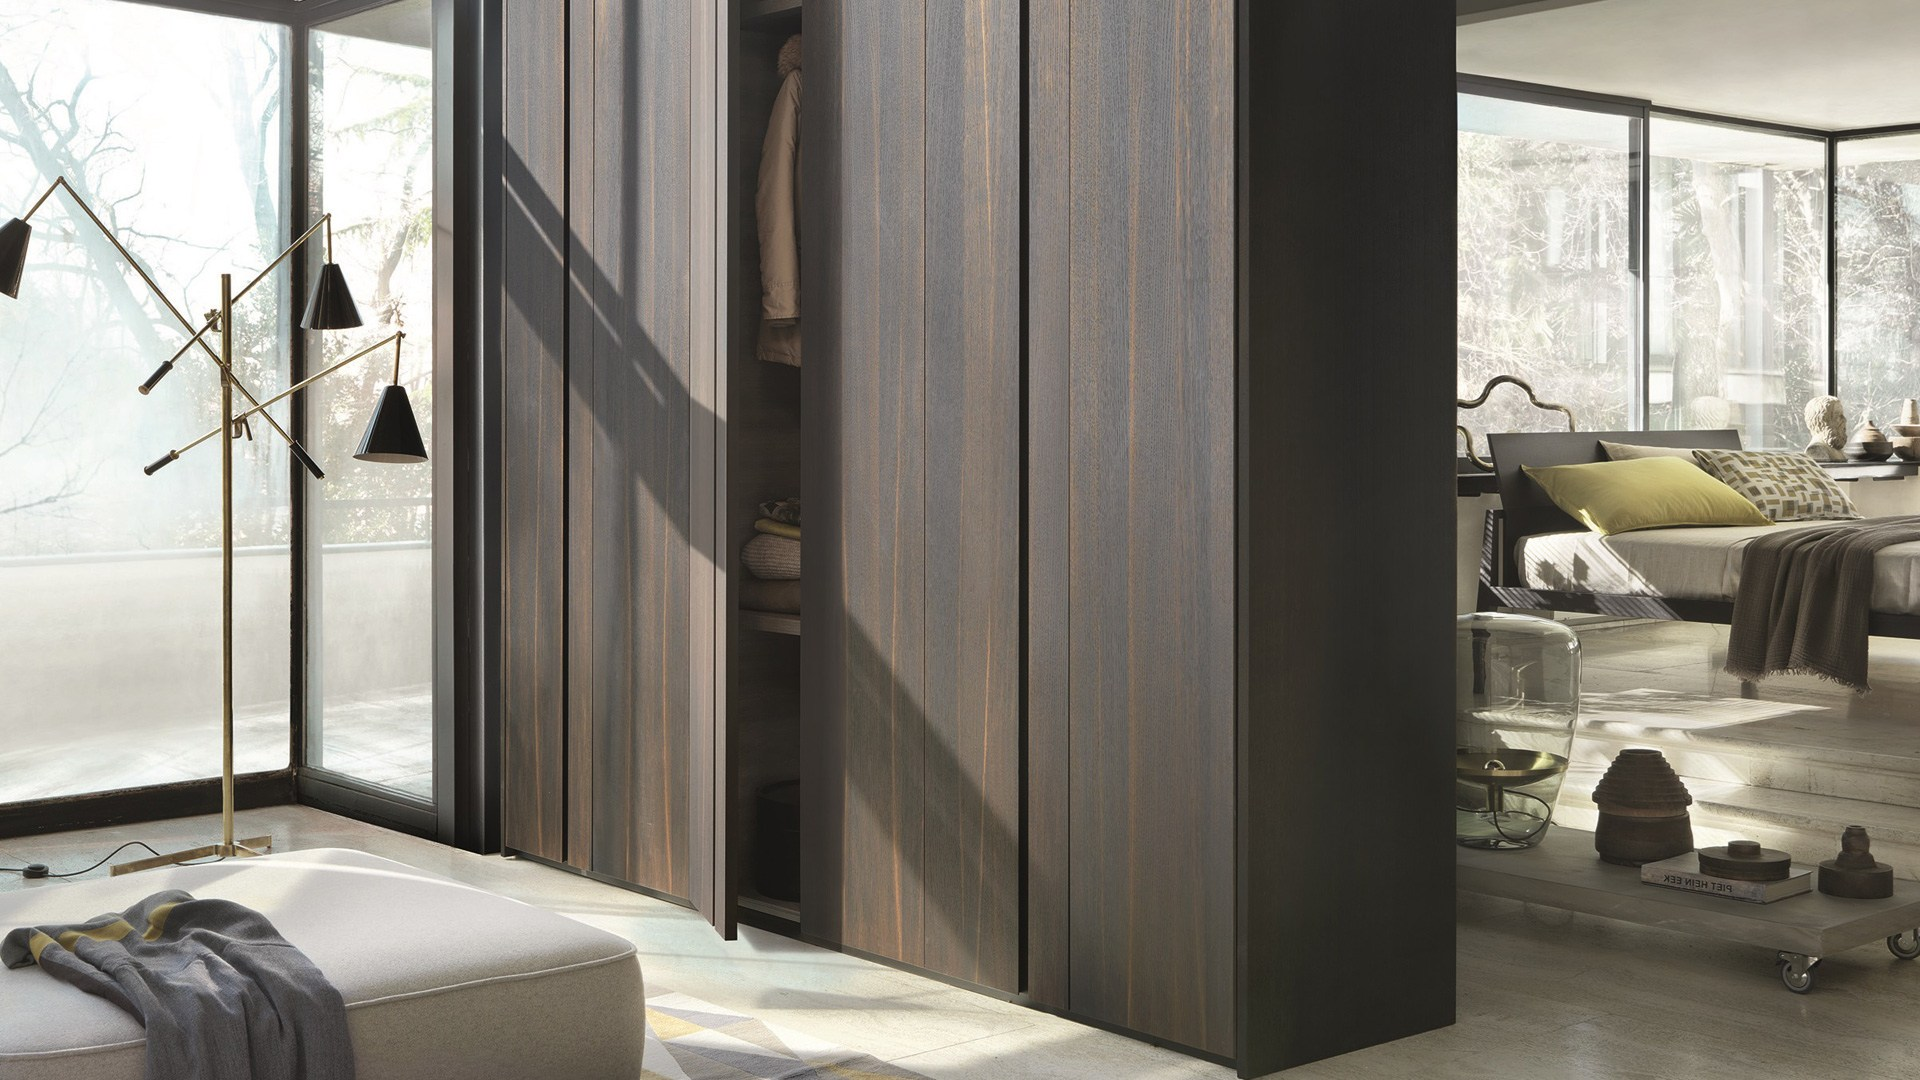 lema naica hinged door wardrobe buy from campbell watson uk. Black Bedroom Furniture Sets. Home Design Ideas